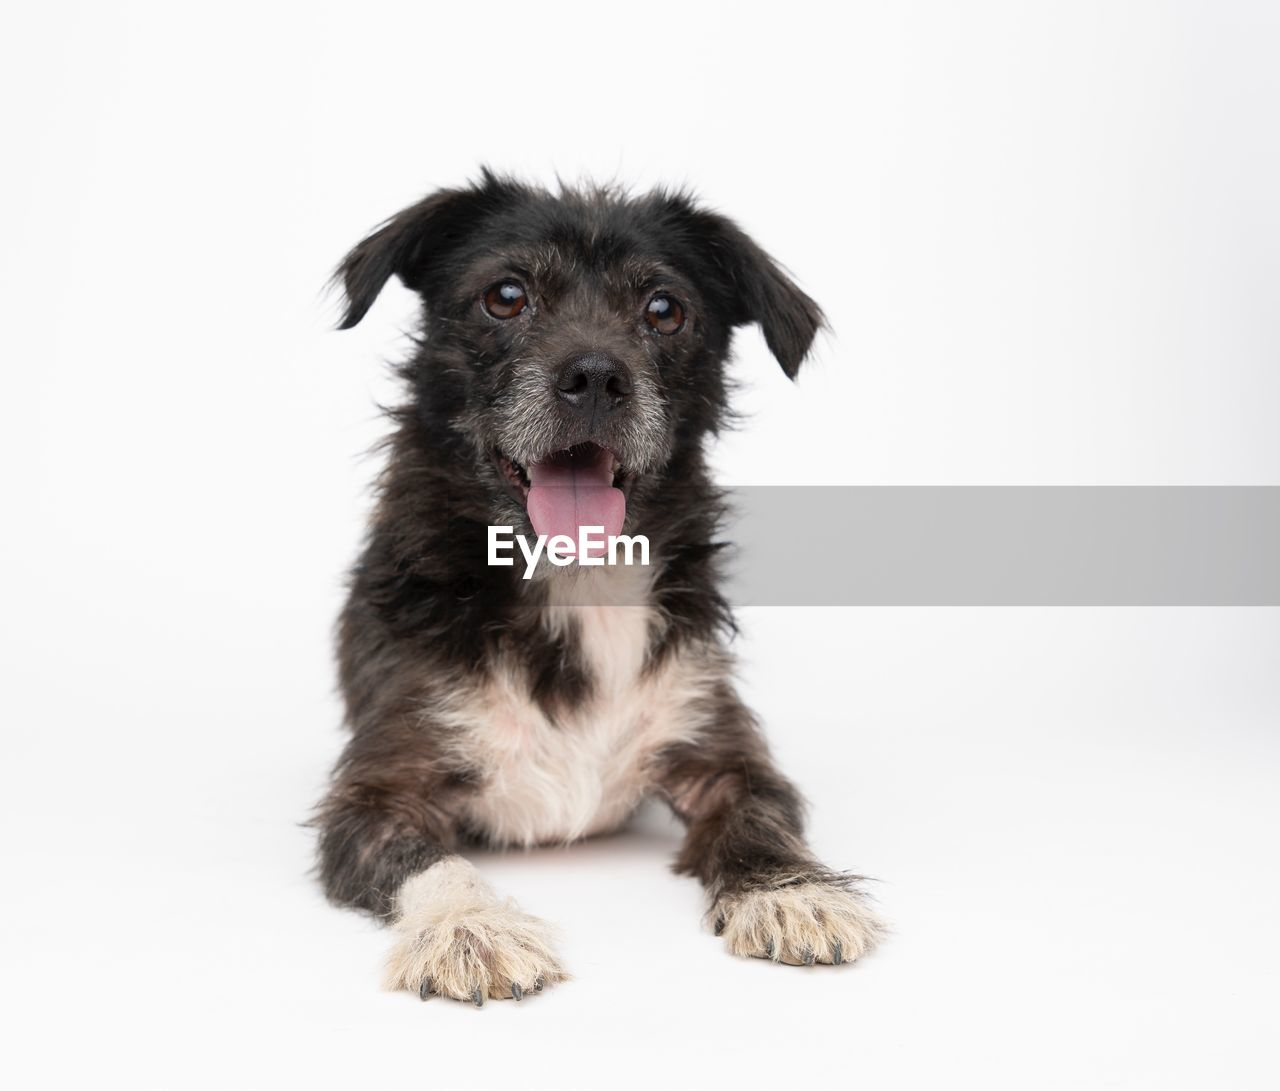 domestic, pets, one animal, mammal, domestic animals, dog, canine, animal, animal themes, portrait, looking at camera, studio shot, vertebrate, young animal, indoors, white background, sitting, puppy, no people, cute, mouth open, animal tongue, animal head, innocence